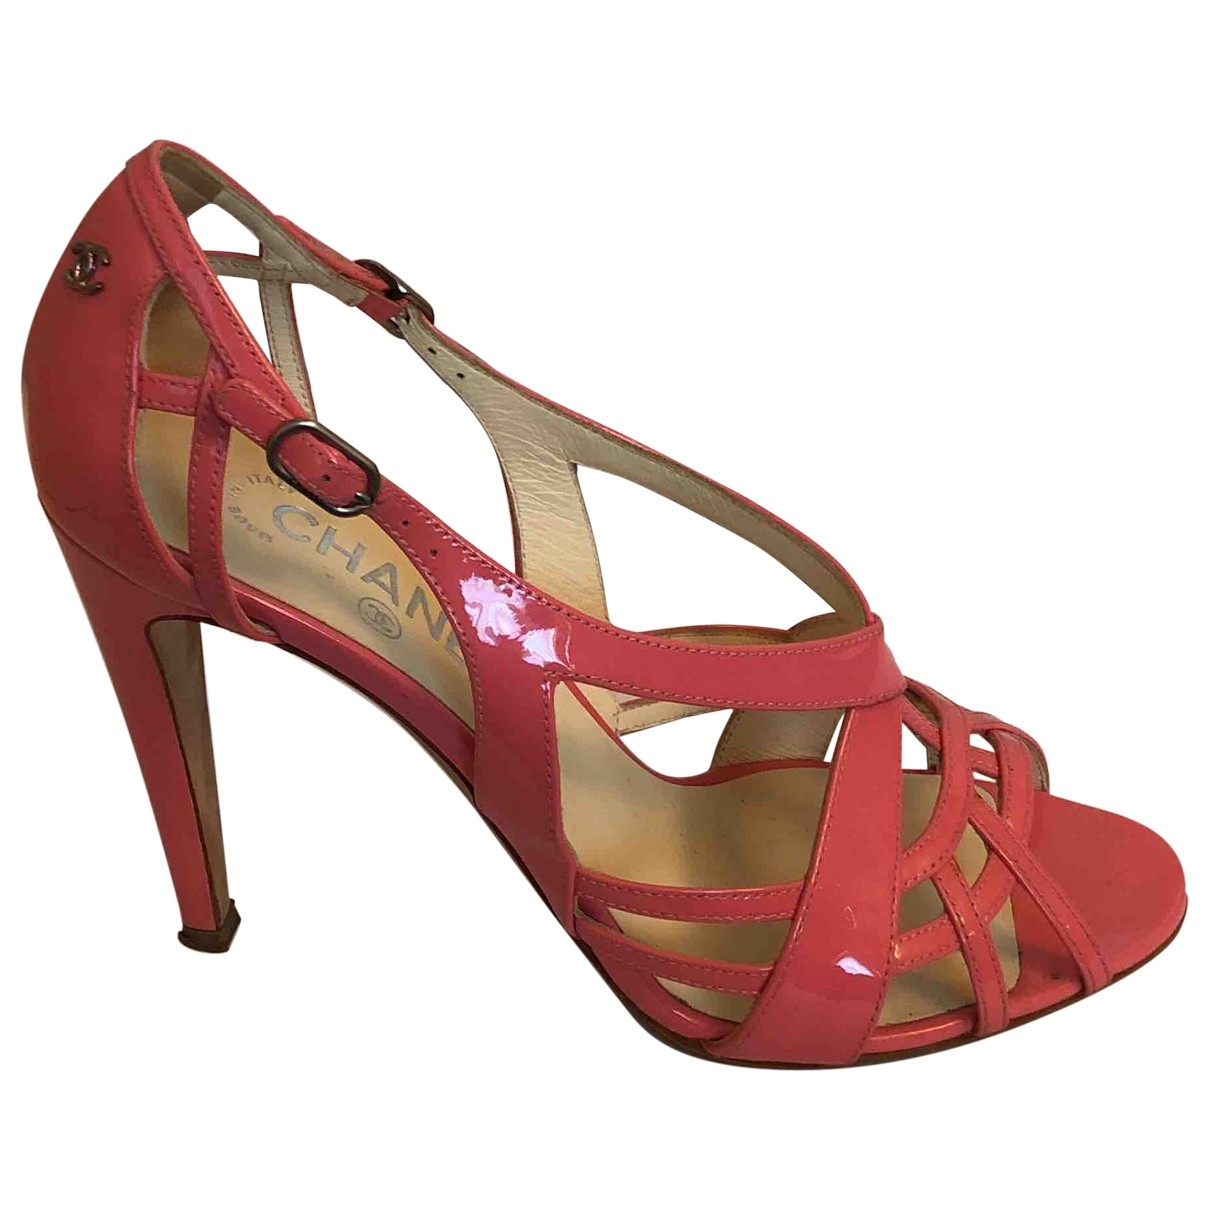 Chanel \N Pink Patent leather Sandals for Women 39 EU